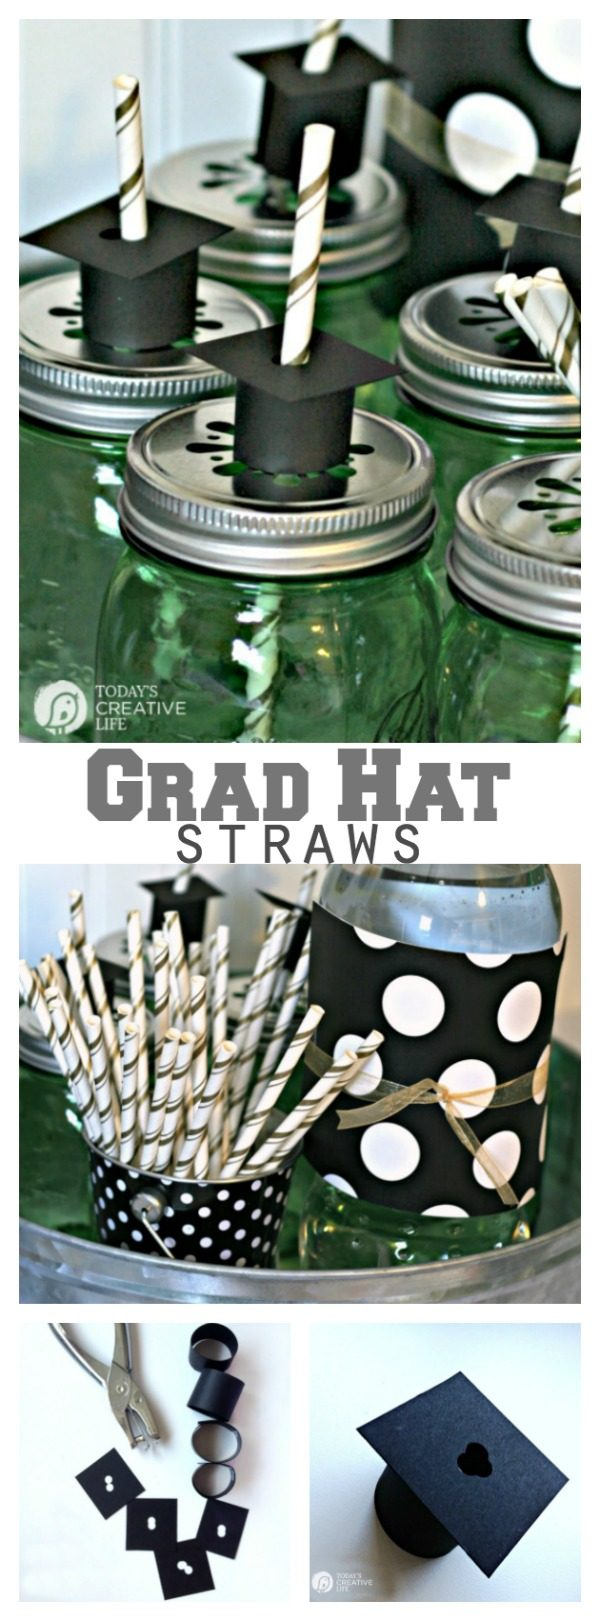 High School Graduation Party Ideas | Simple Grad Hat Straws for DIY Decorations. Graduation DIY Craft | See the tutorial on TodaysCreativeLife.com